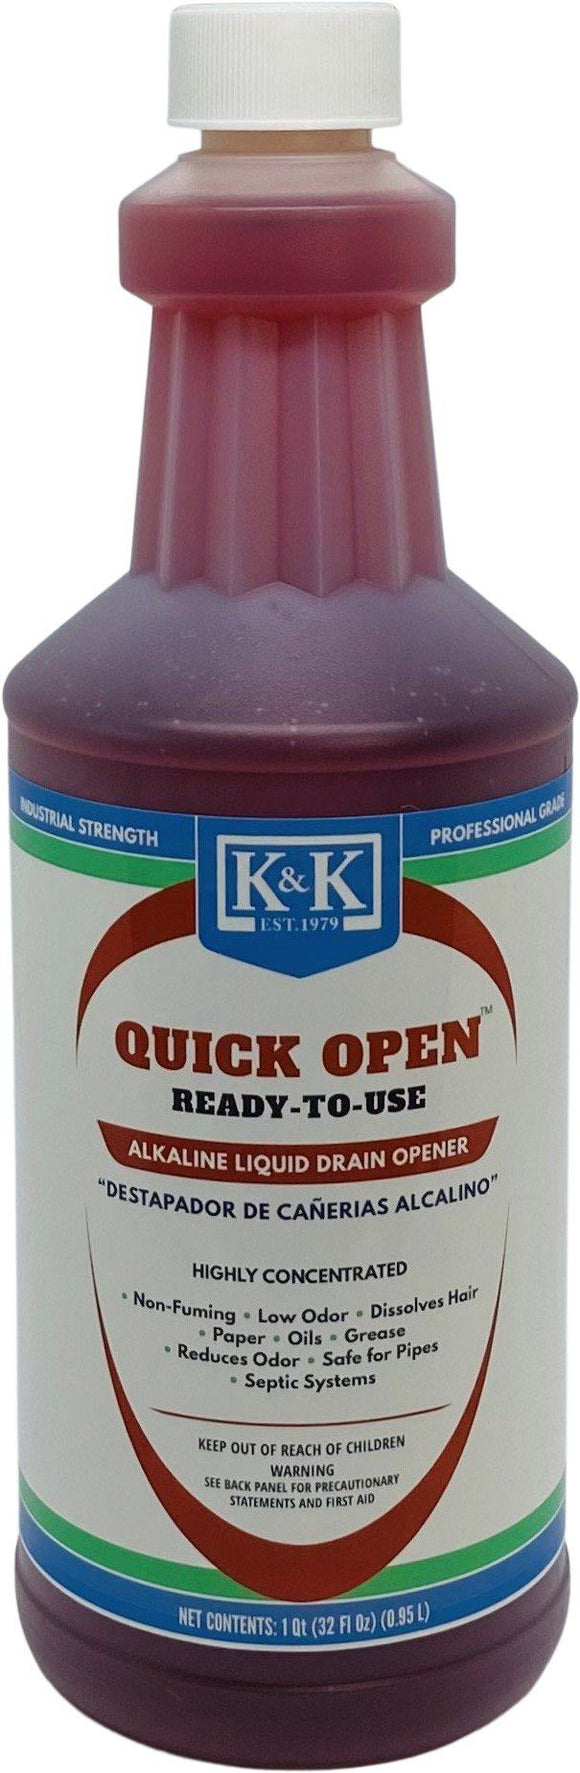 QUICK OPEN - RTU | Concentrated Alkaline Liquid Drain Opener and Maintainer